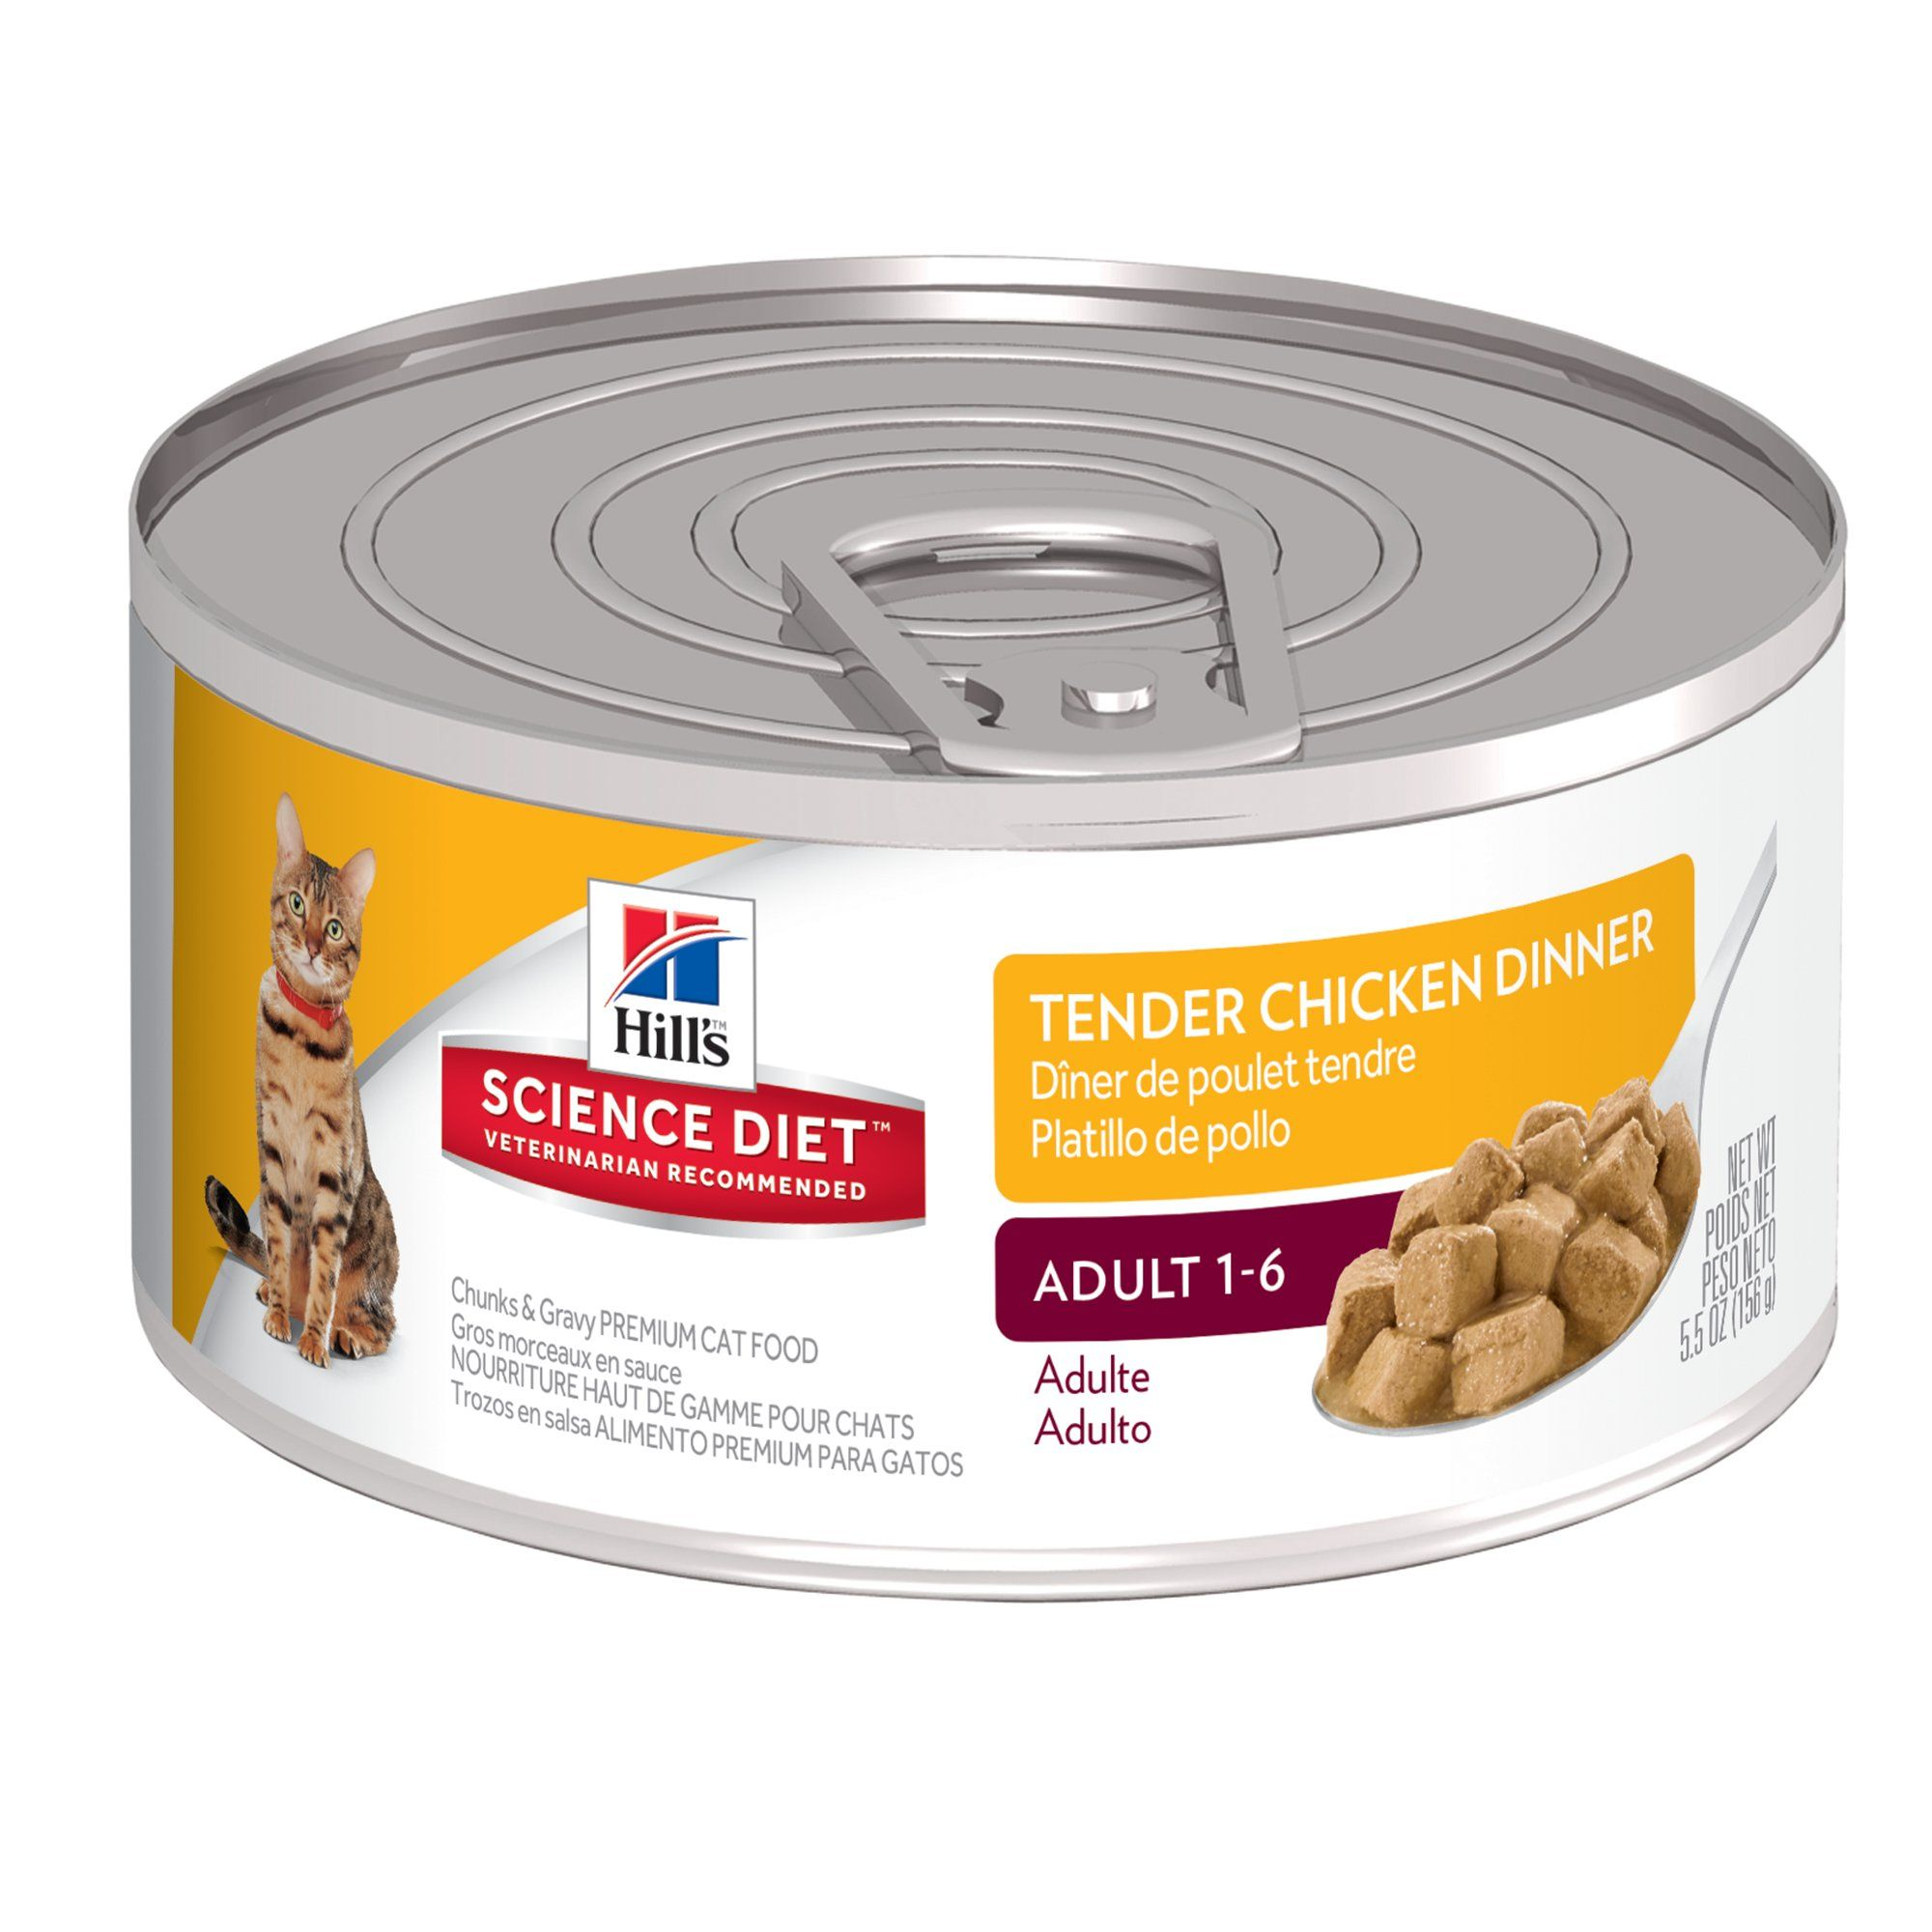 Hill S Science Diet Adult Tender Chicken Dinner Canned Cat Food 5 5 Oz Case Of 24 24 X 5 5 Oz Canned Cat Food Hills Science Diet Science Diet